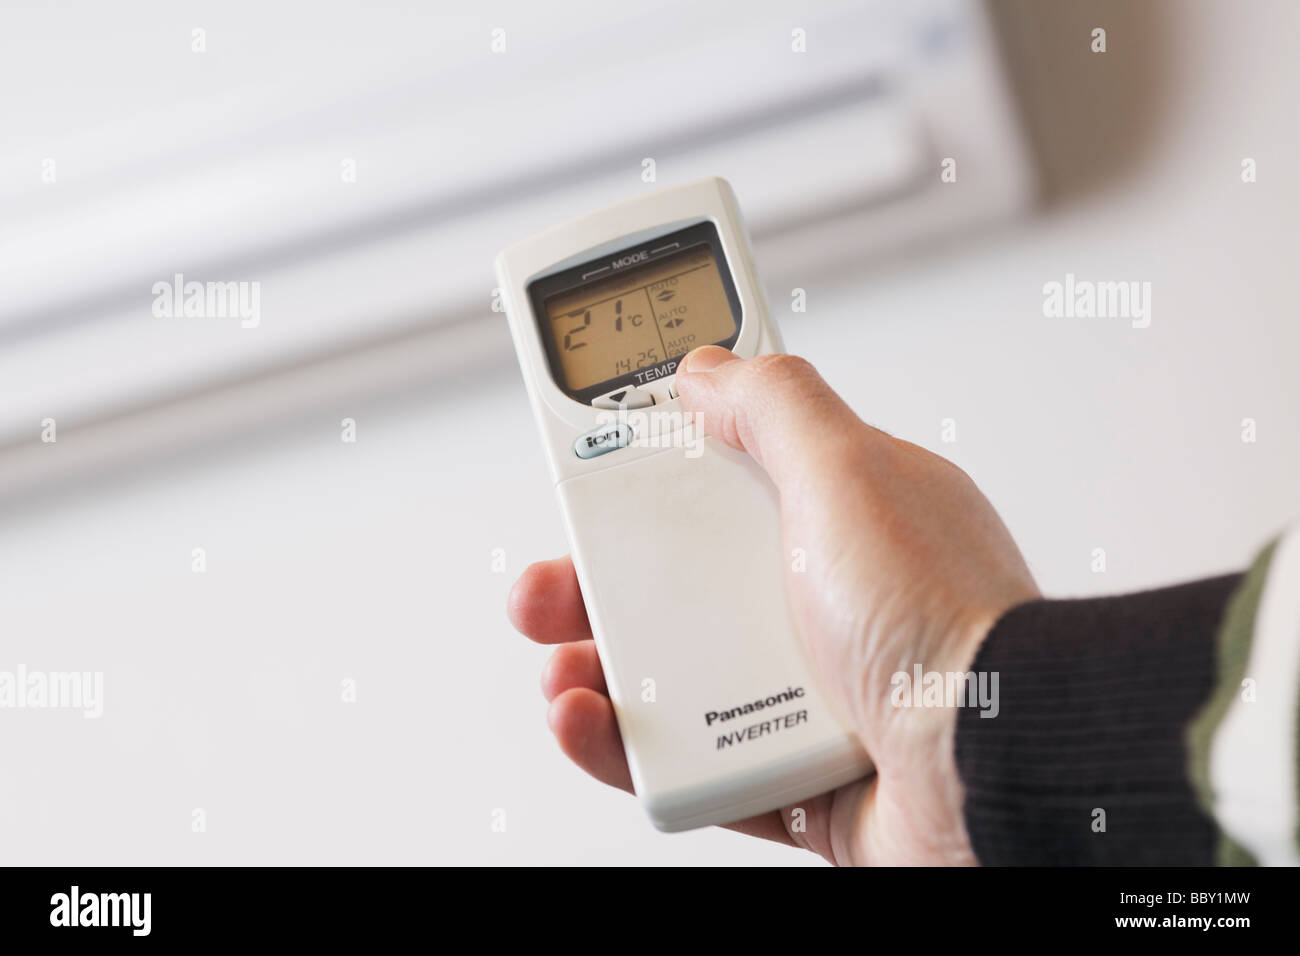 Hand using remote control of a reverse cycle air conditioner heat pump seen in background - Stock Image